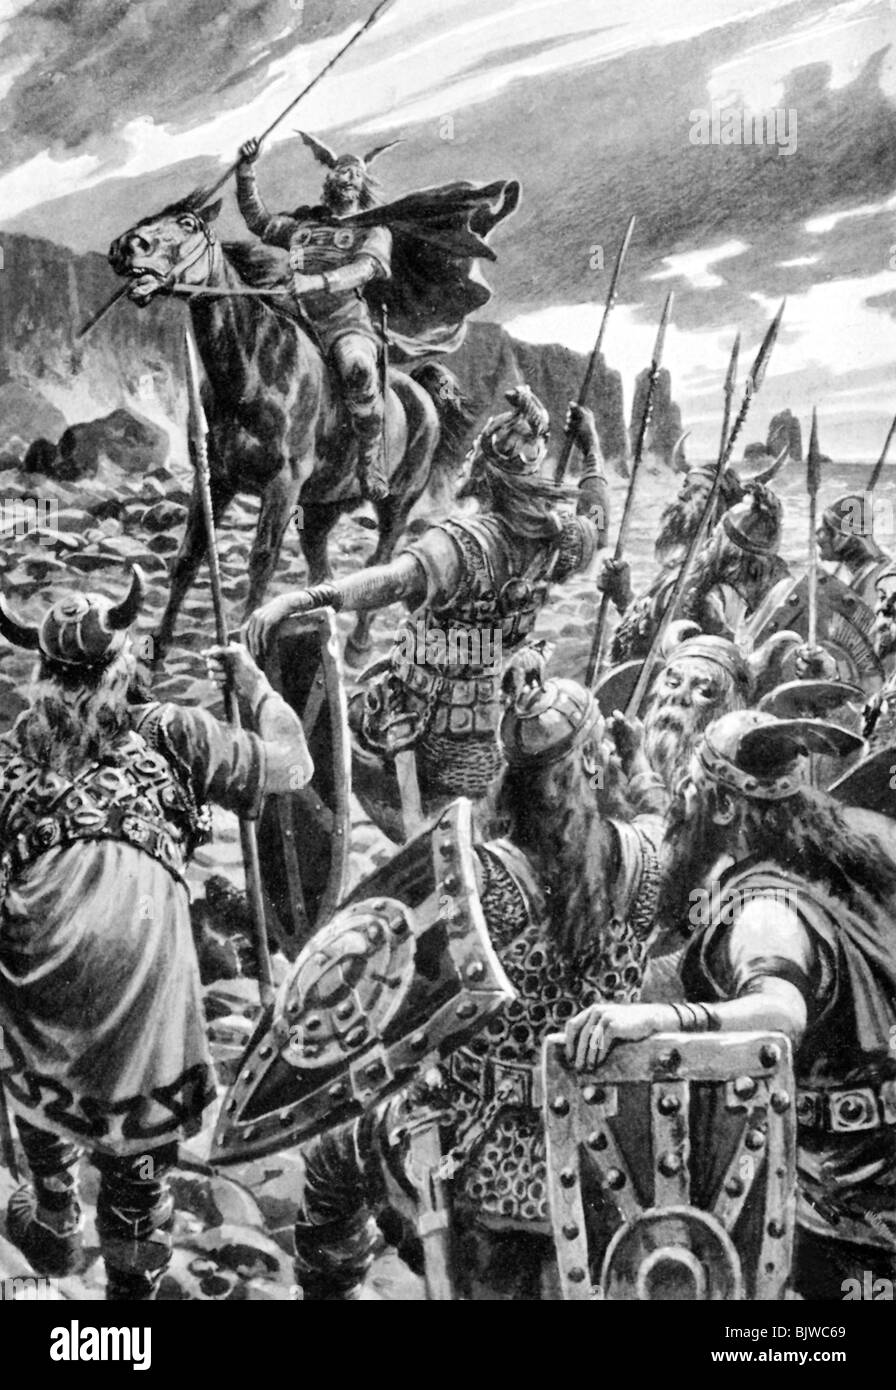 literature, nordic saga, 'Beowulf', Old English heroic epic from 8th century, illustration by Hans W. Schmidt, - Stock Image